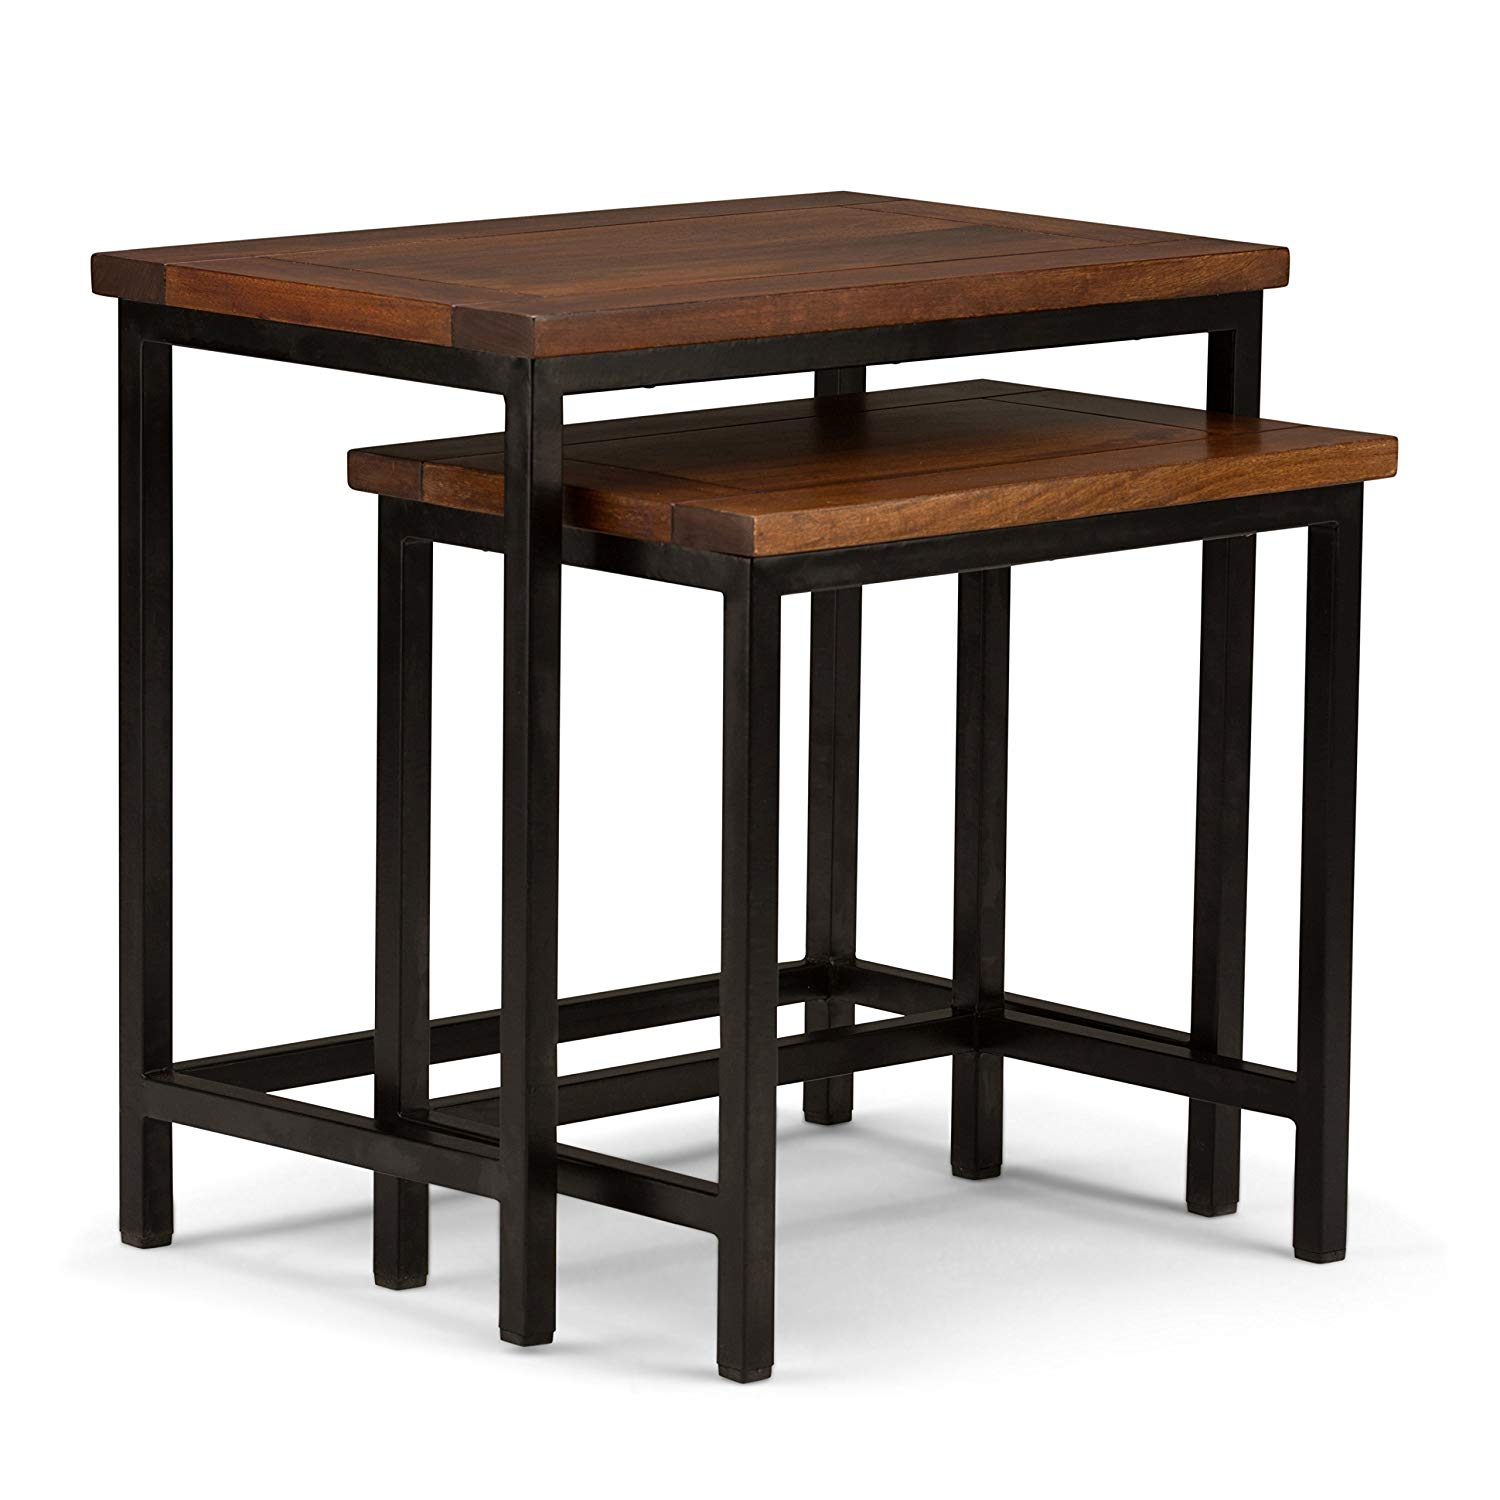 simpli home skyler solid mango wood and metal accent table modern industrial nesting side dark cognac brown kitchen dining olive green oblong tablecloth all glass iron chairs